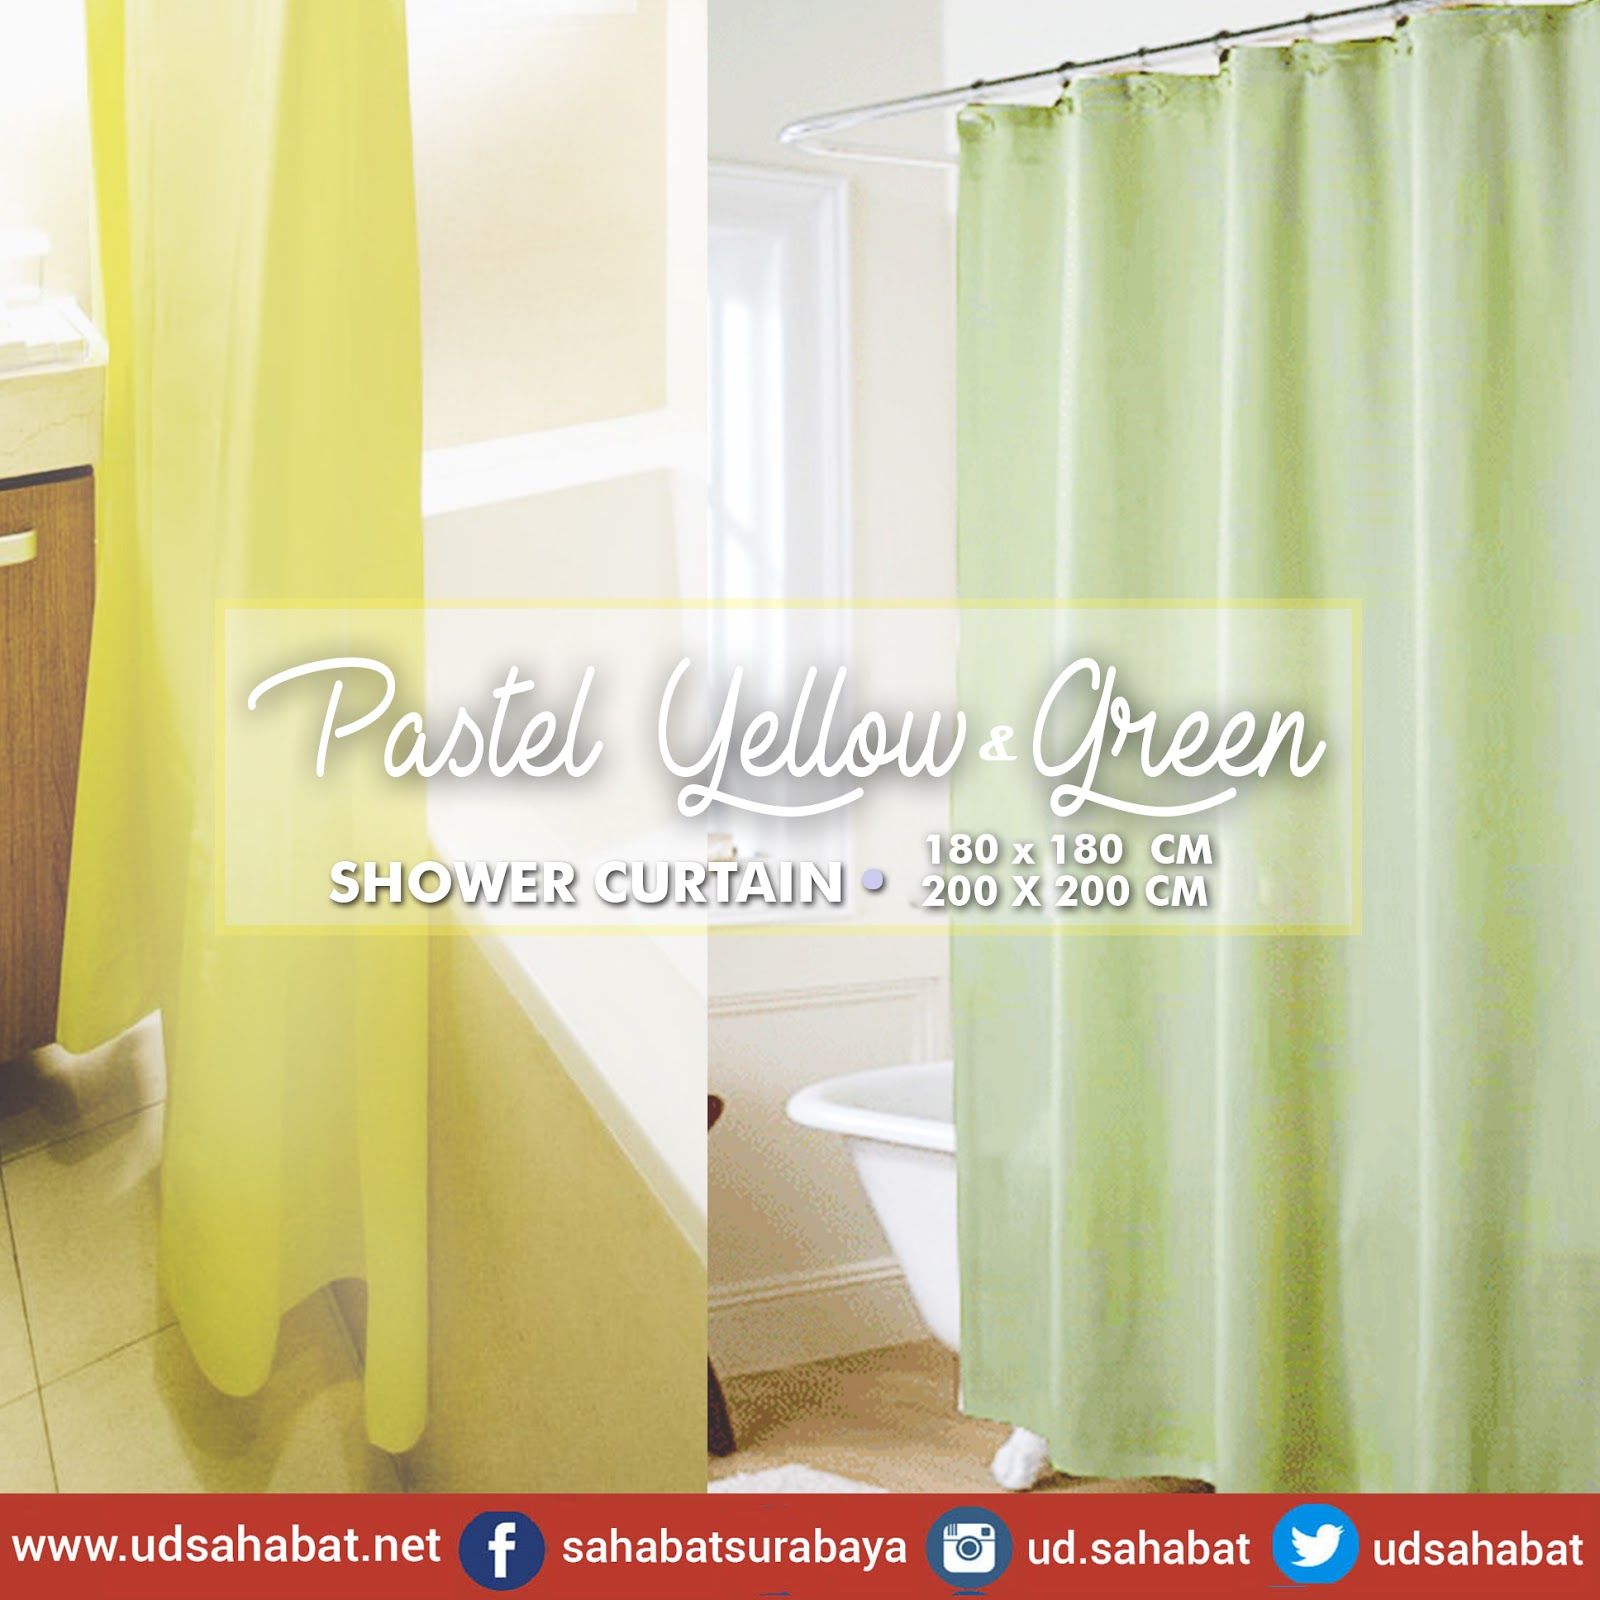 jual shower curtain surabaya udsahabat